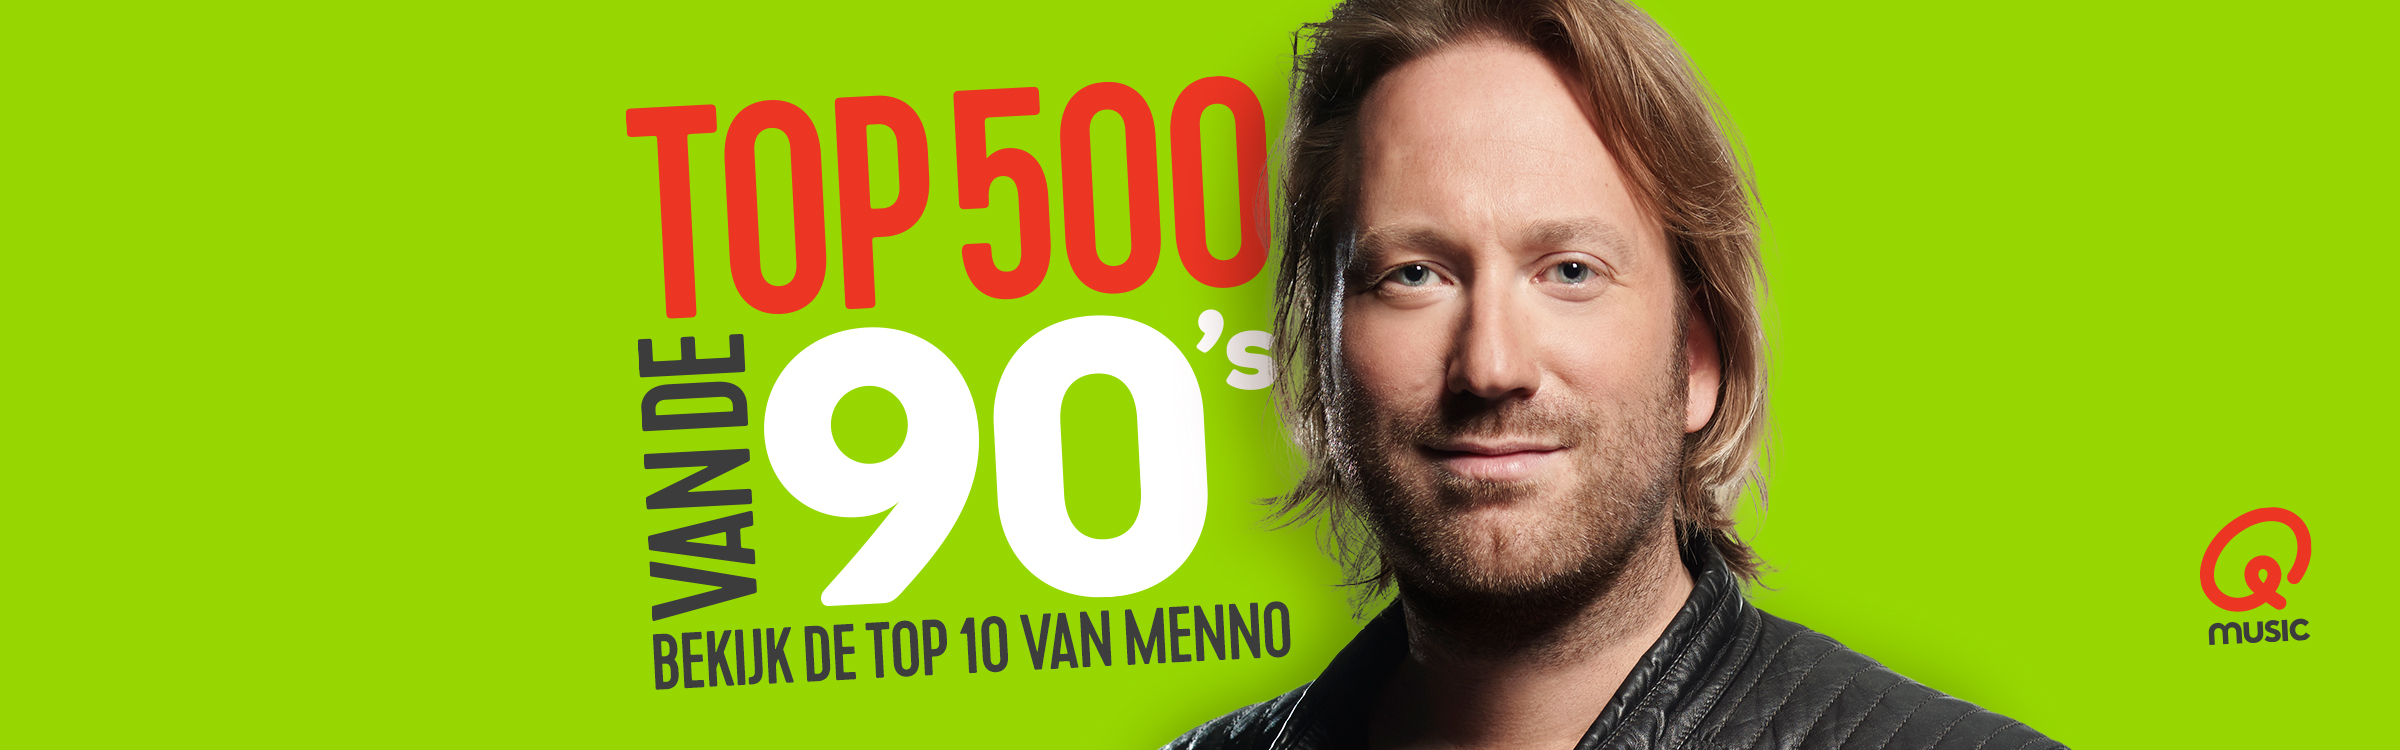 Qmusic actionheader 90s dj menno